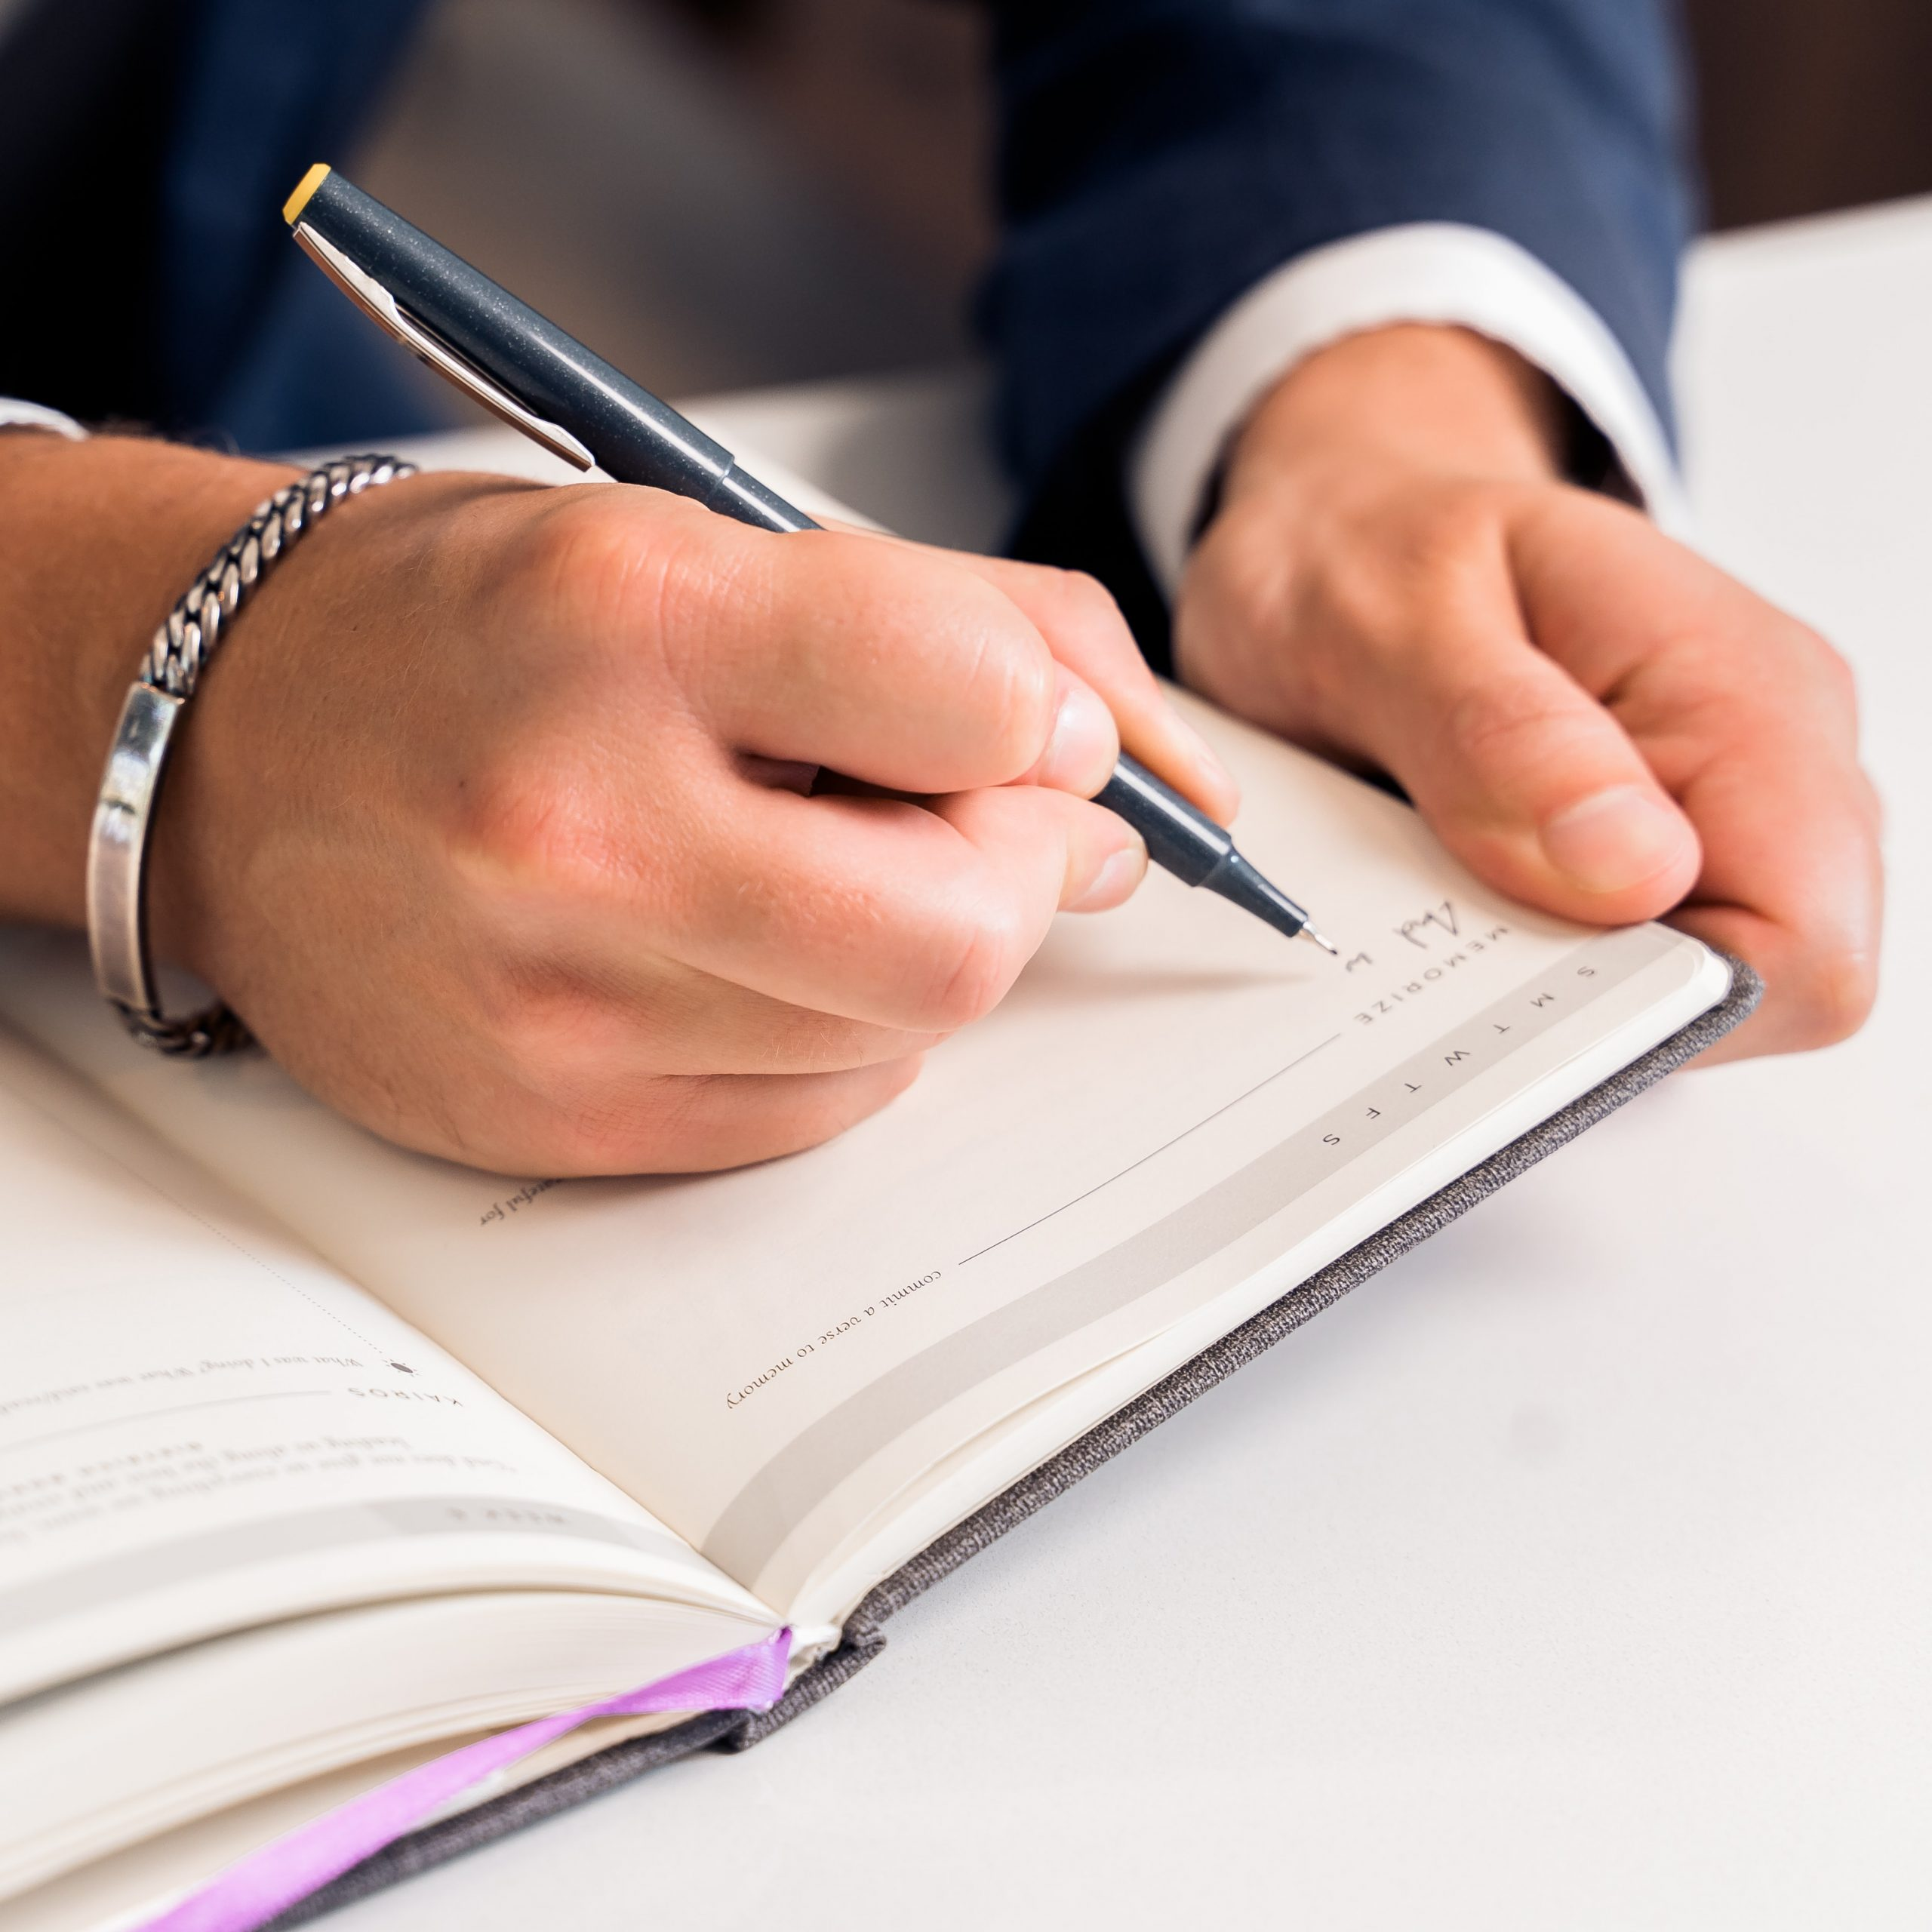 professional liability insurance for counselors